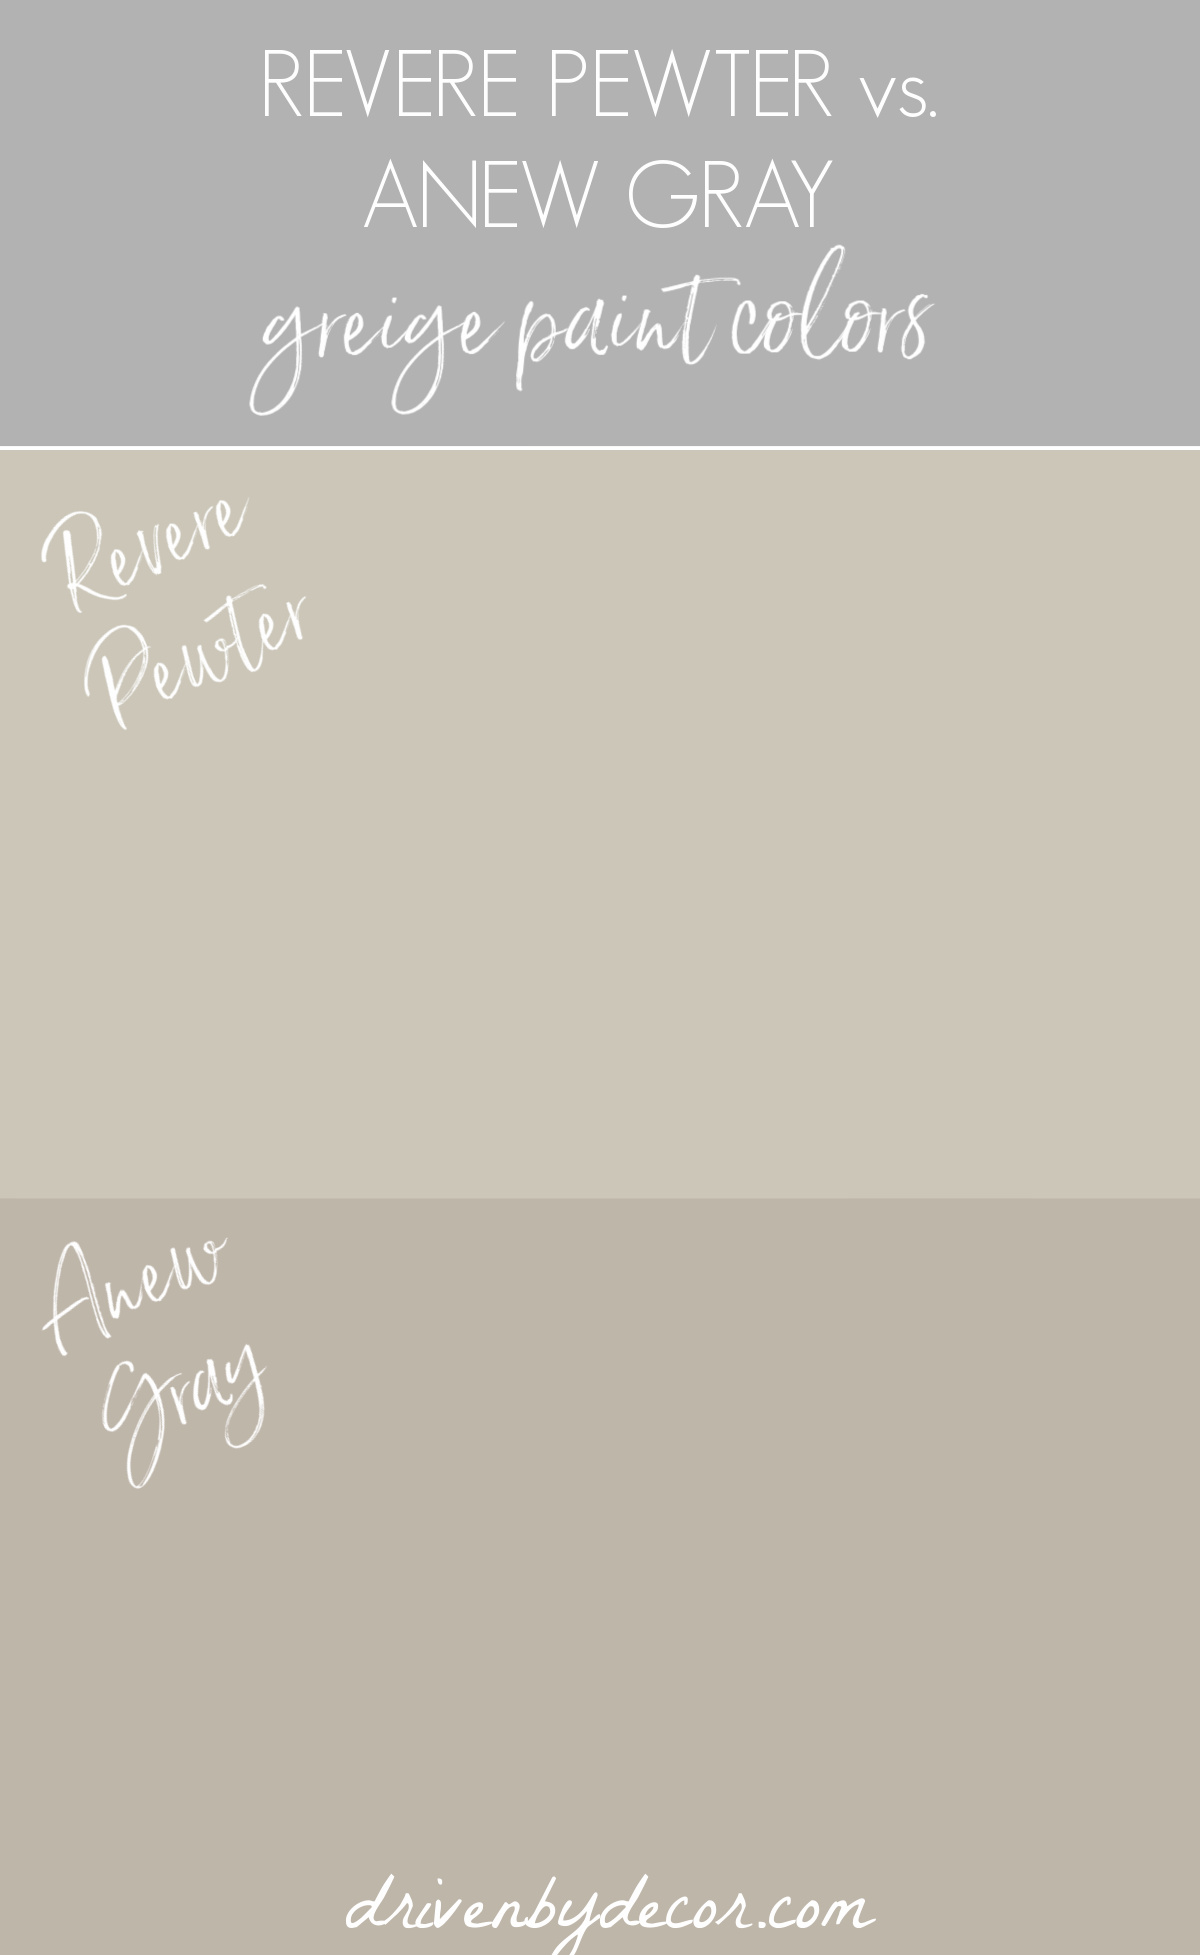 Anew Gray vs. Revere Pewter greige paint colors